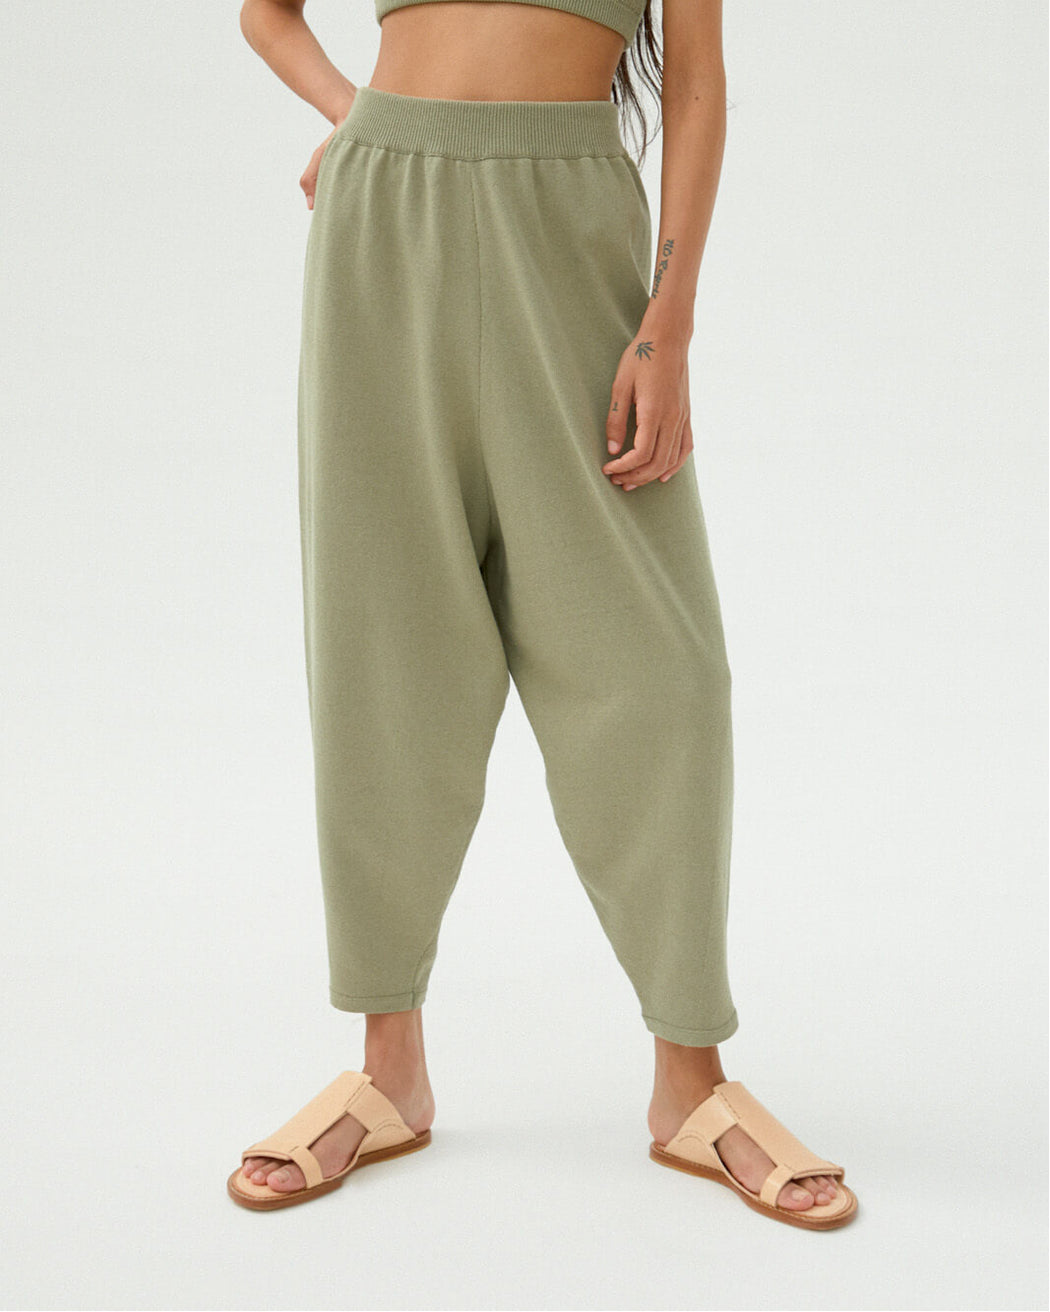 KNIT PANTS | Sage Green